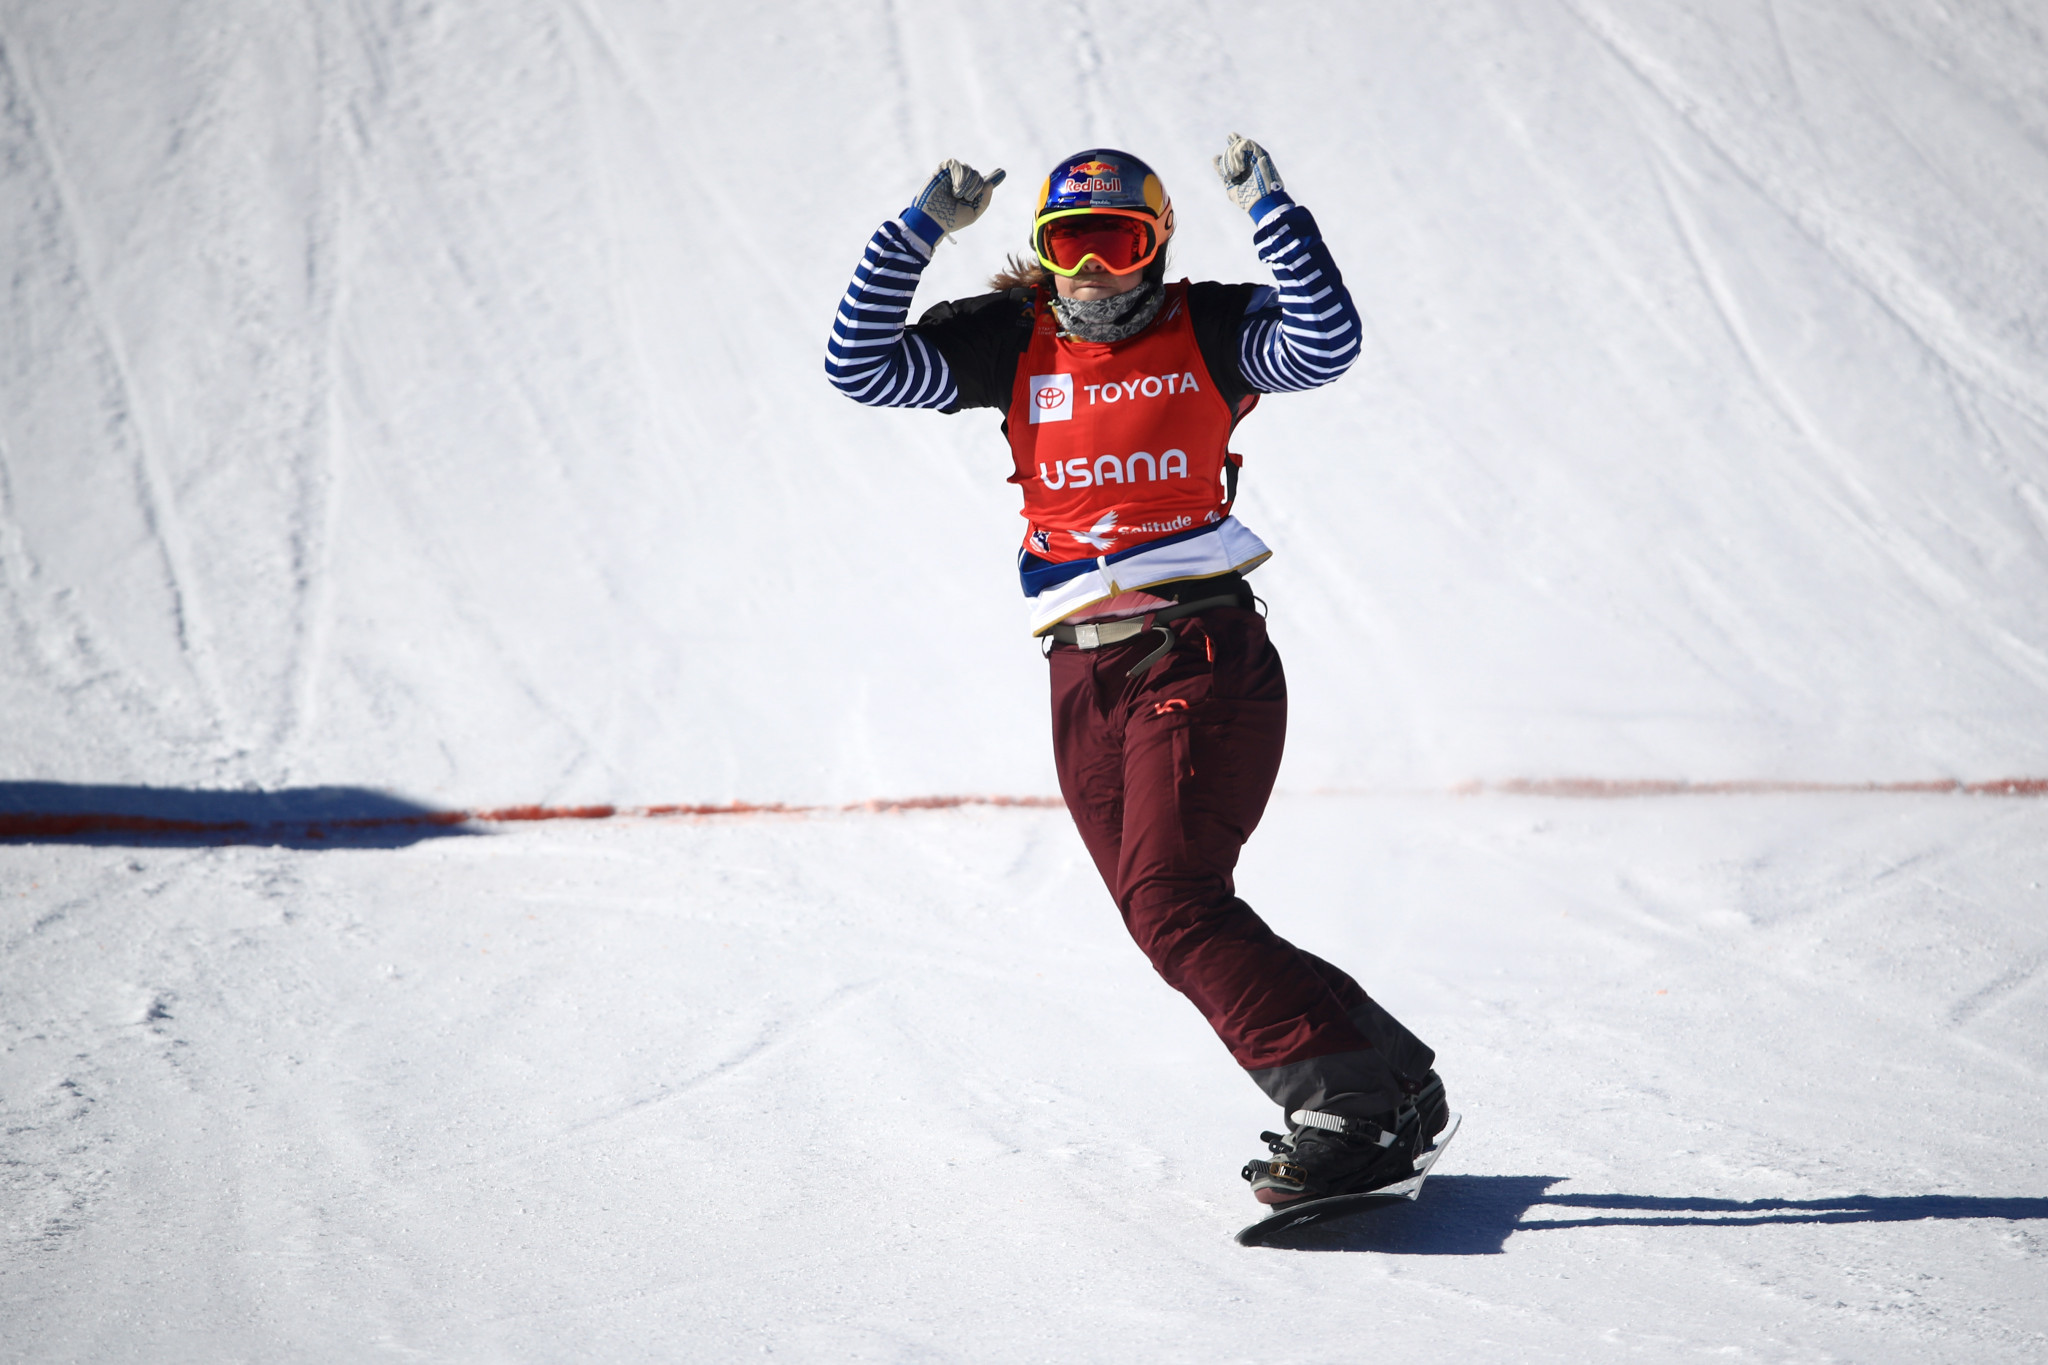 Samková beats Jacobellis to Snowboard Cross World Cup title with final victory in Veysonnaz